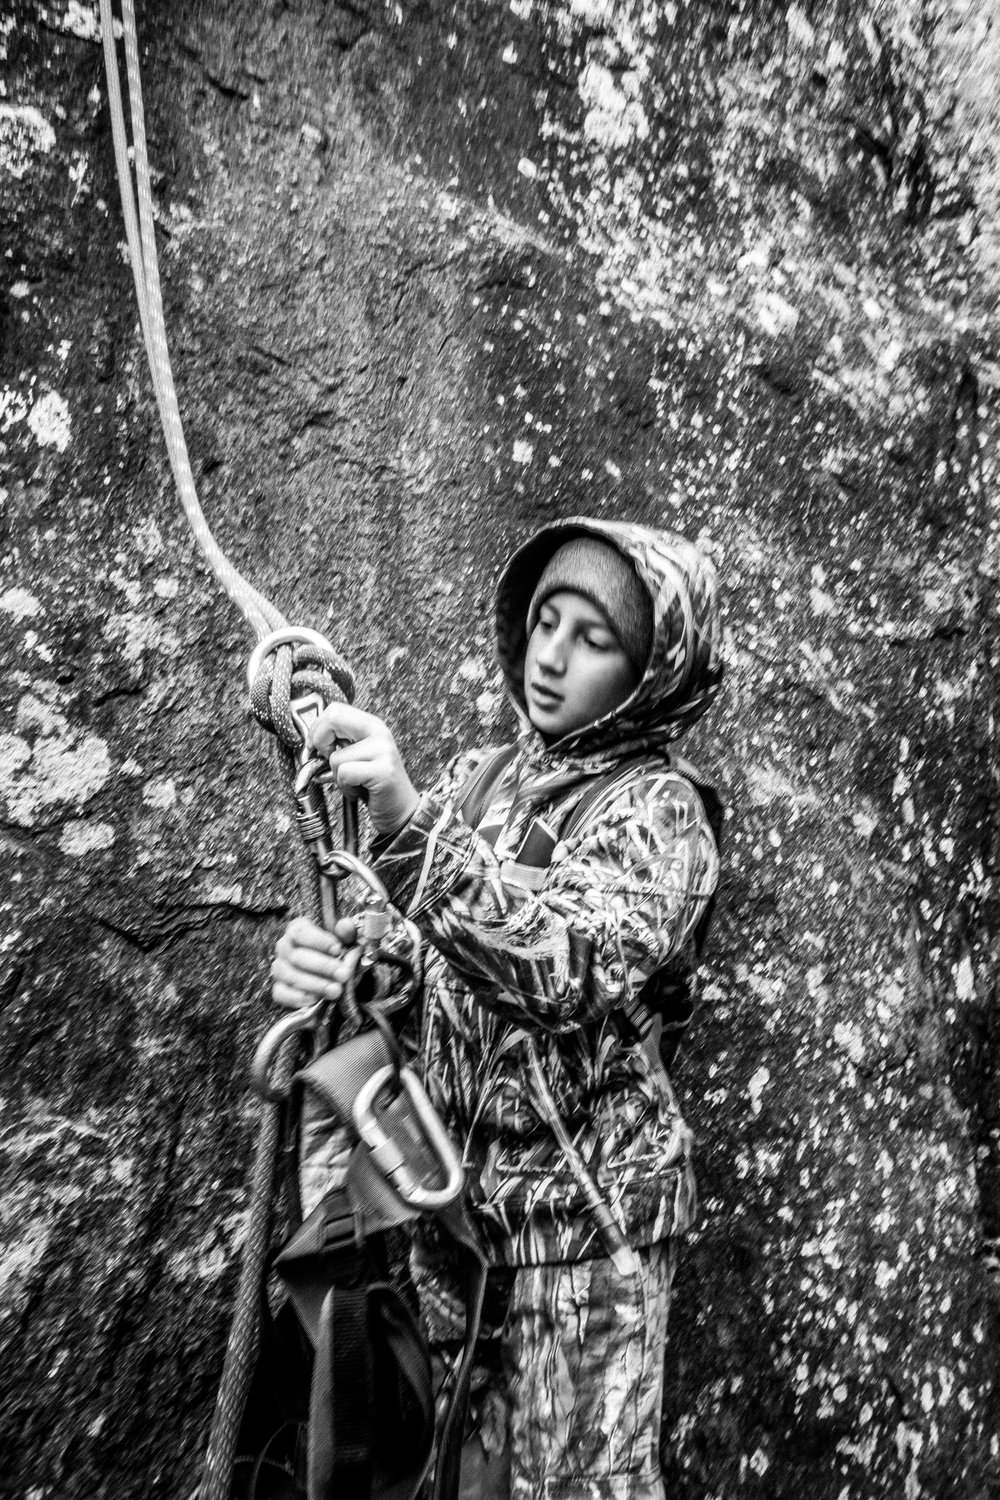 4-22-17 Rock Climbing black & white-2.jpg